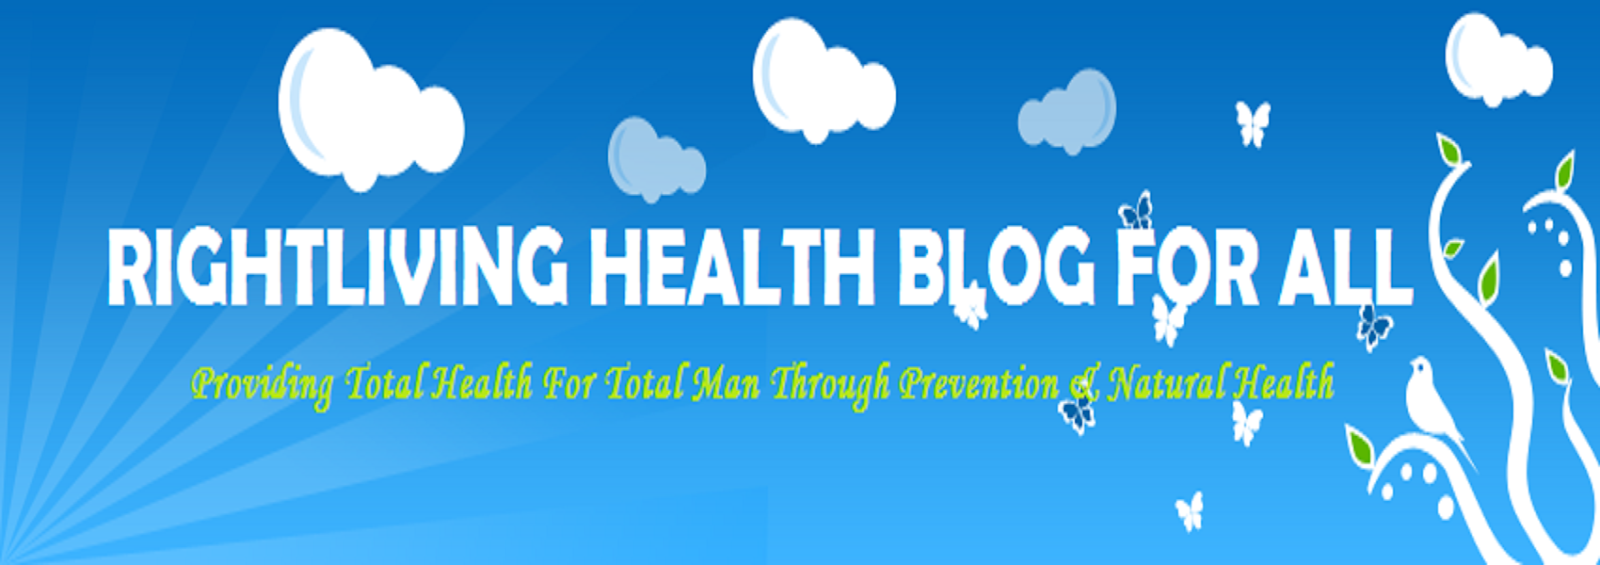 RIGHTLIVING HEALTH BLOG FOR ALL